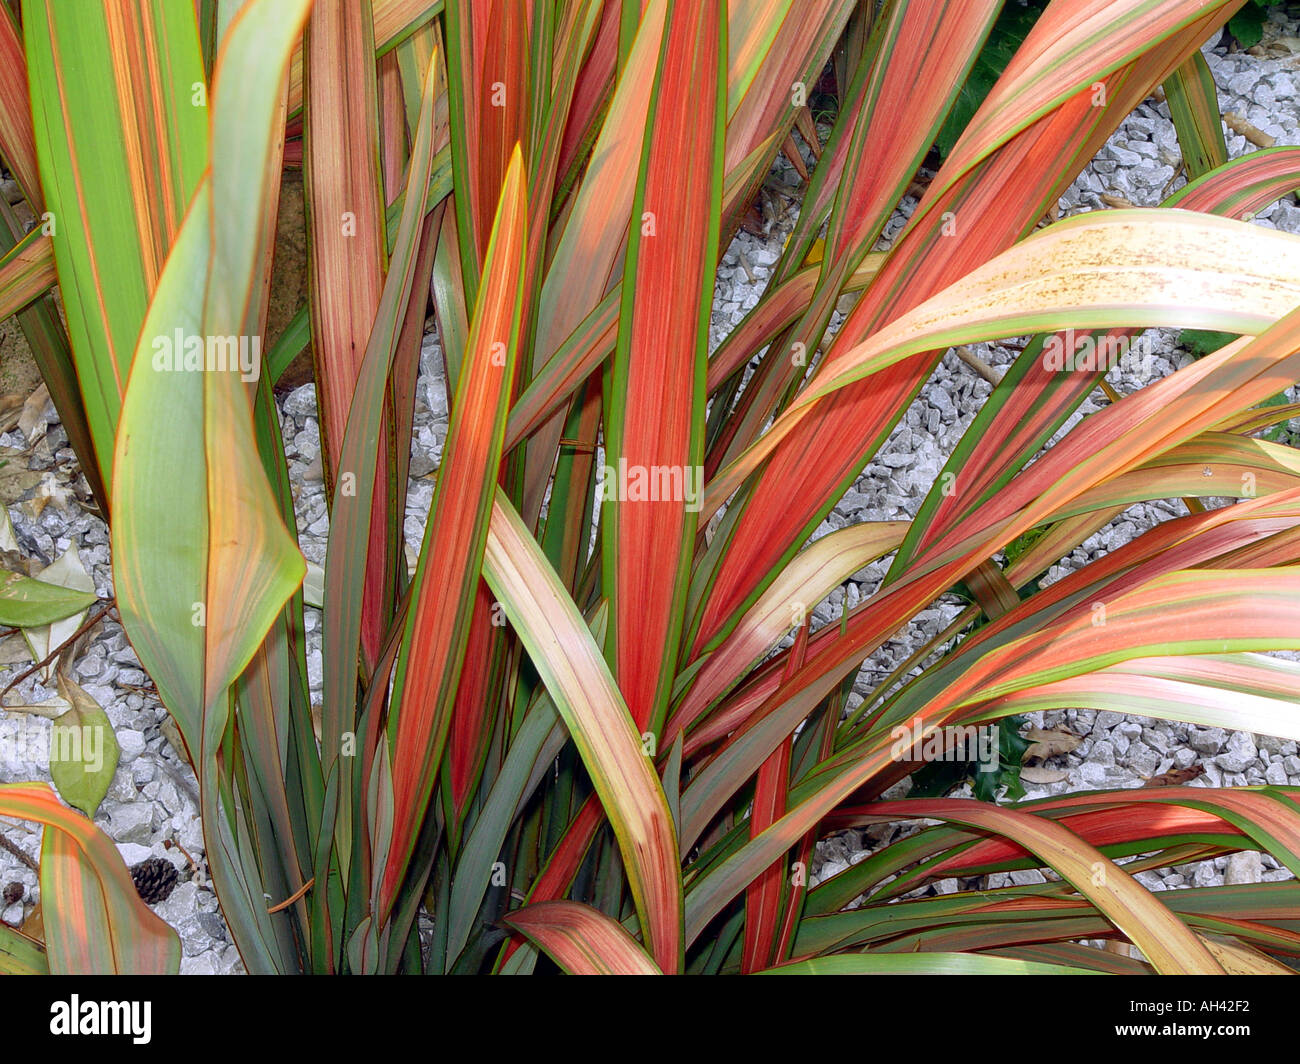 phormium jester new zealand flax hardy garden shrub with. Black Bedroom Furniture Sets. Home Design Ideas